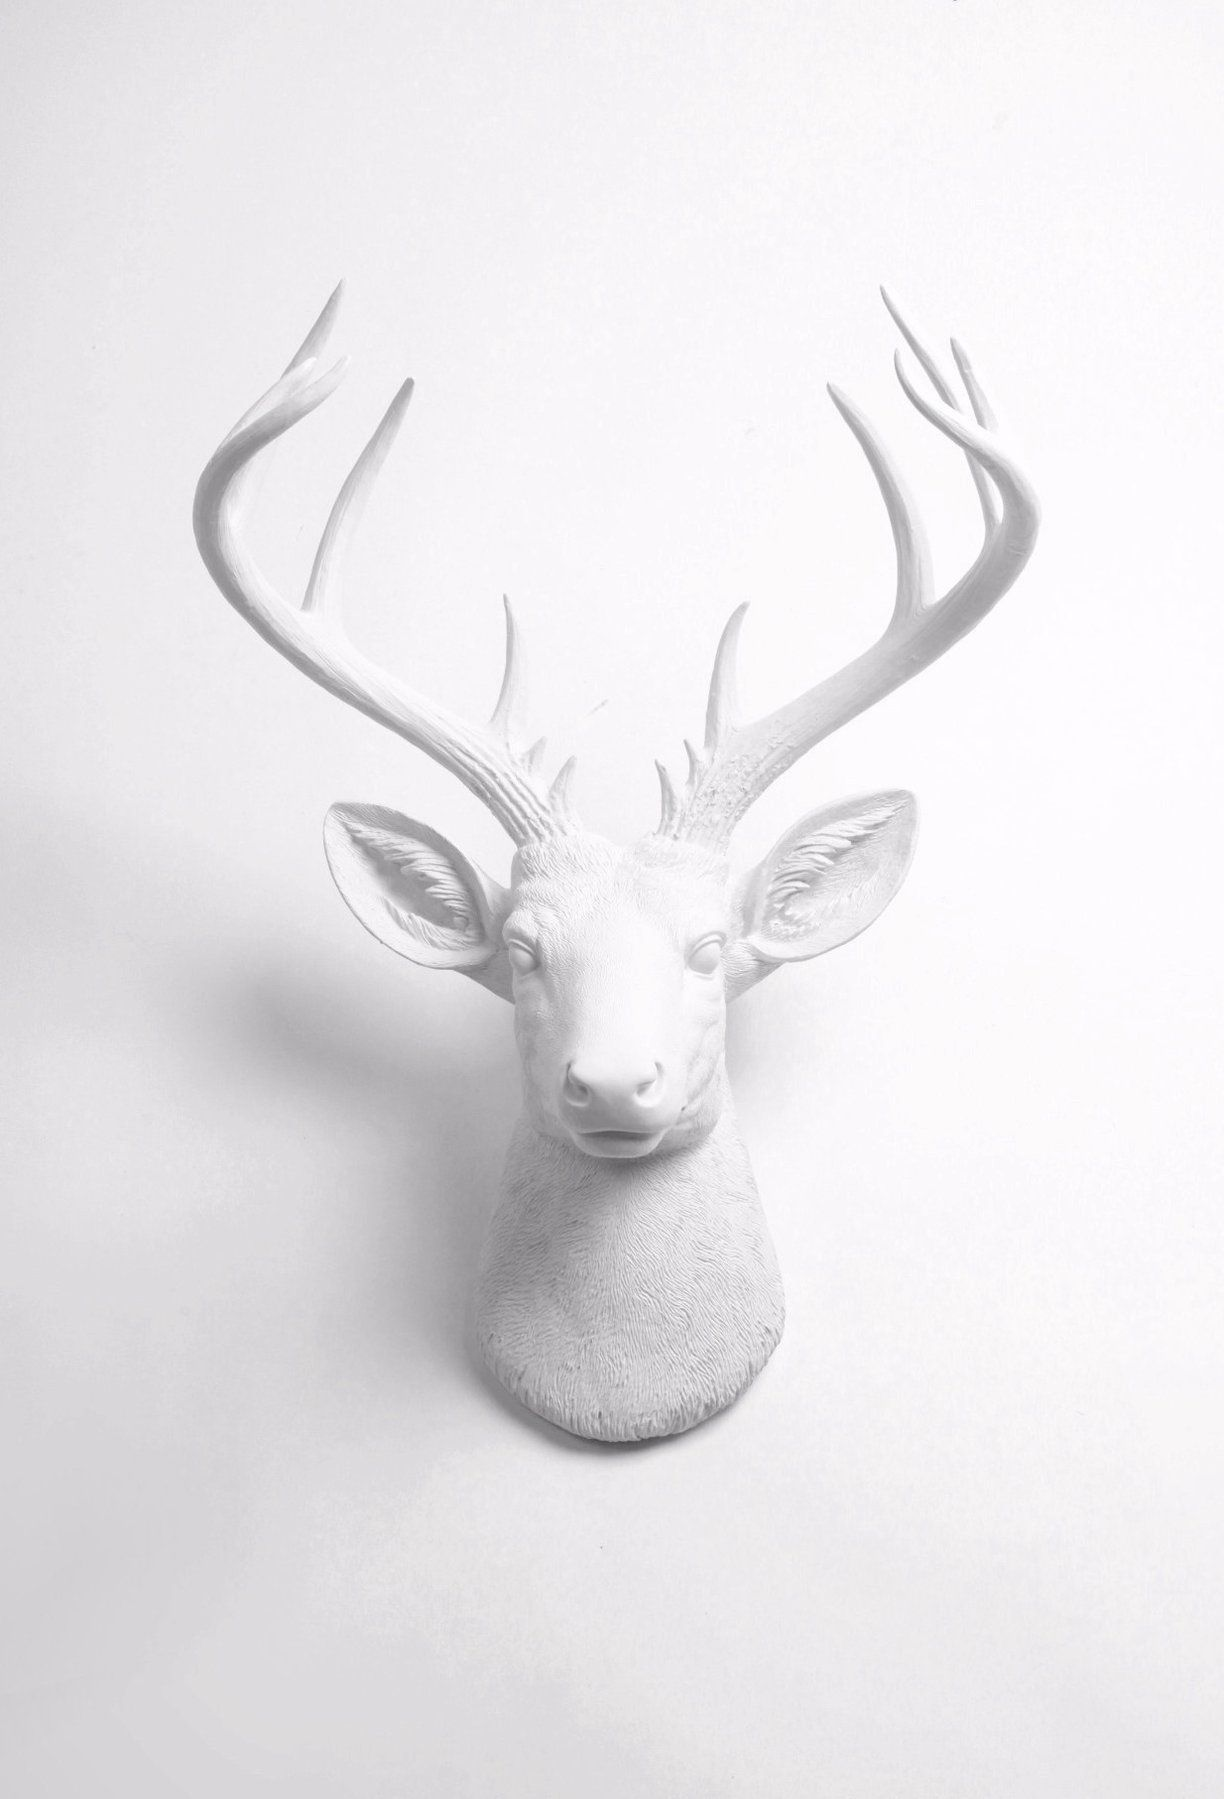 White Deer Antlers Wall Decor from i.pinimg.com